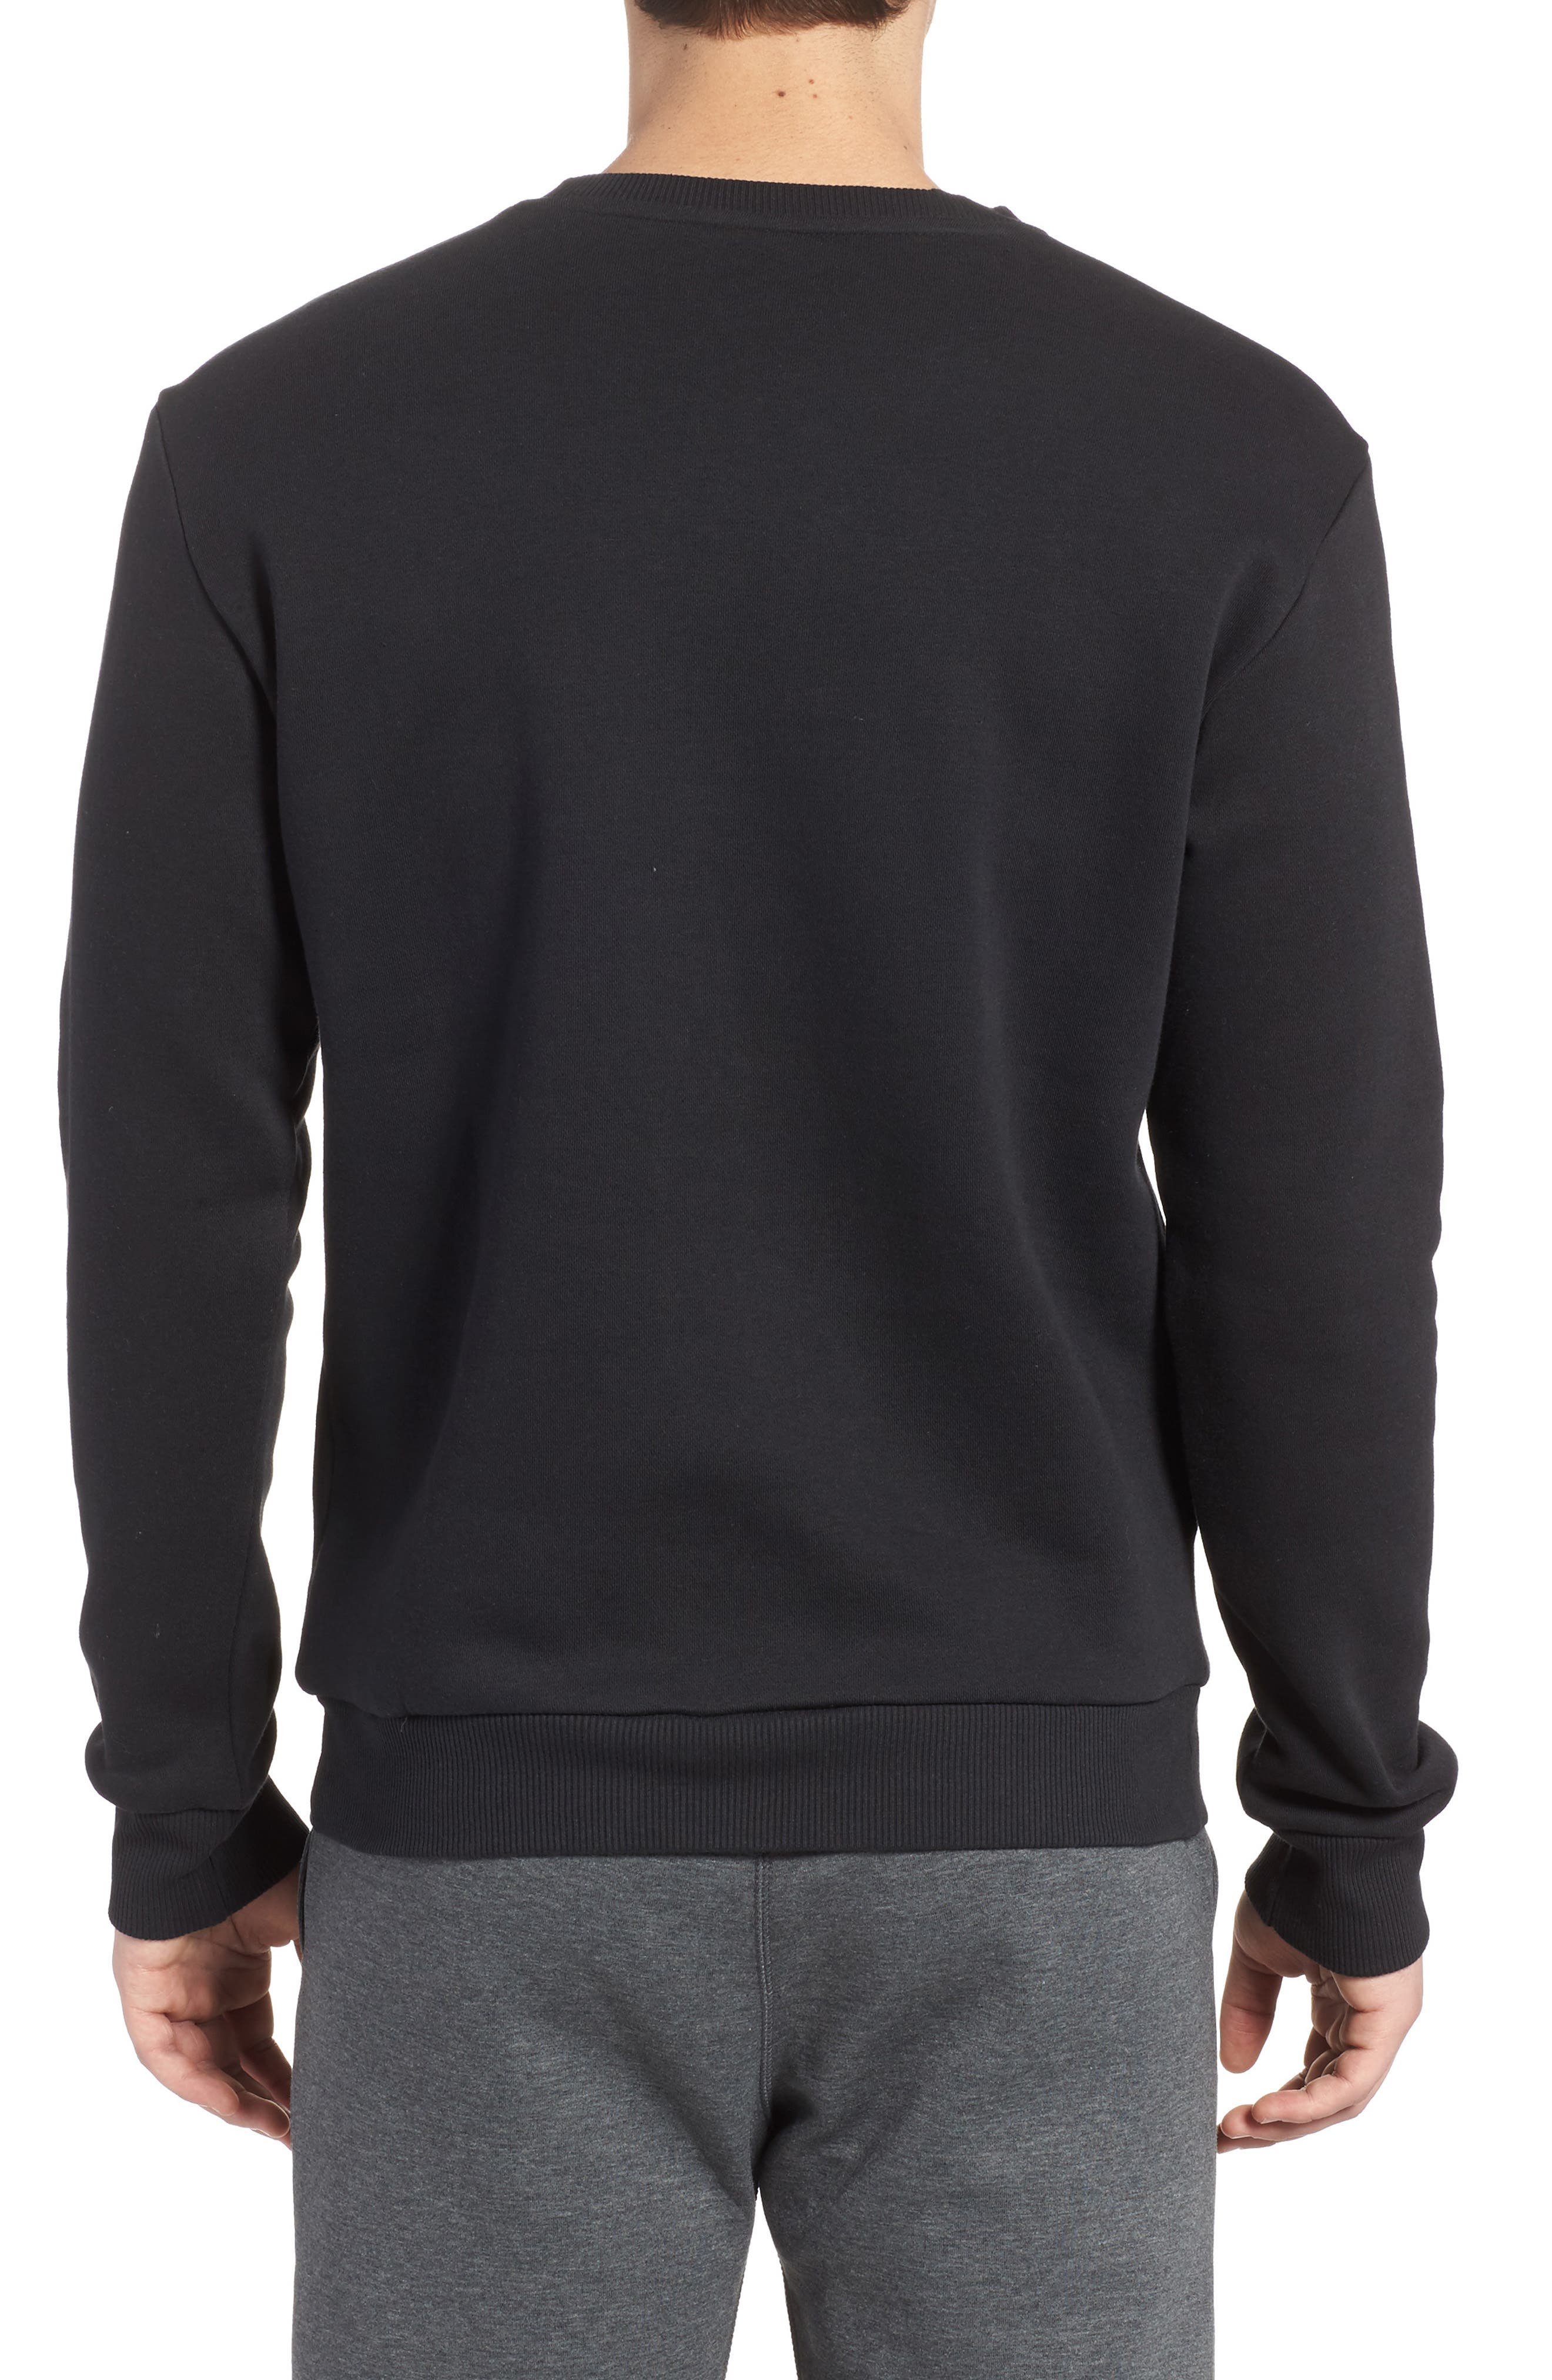 Starcrest Sweatshirt,                             Alternate thumbnail 2, color,                             005